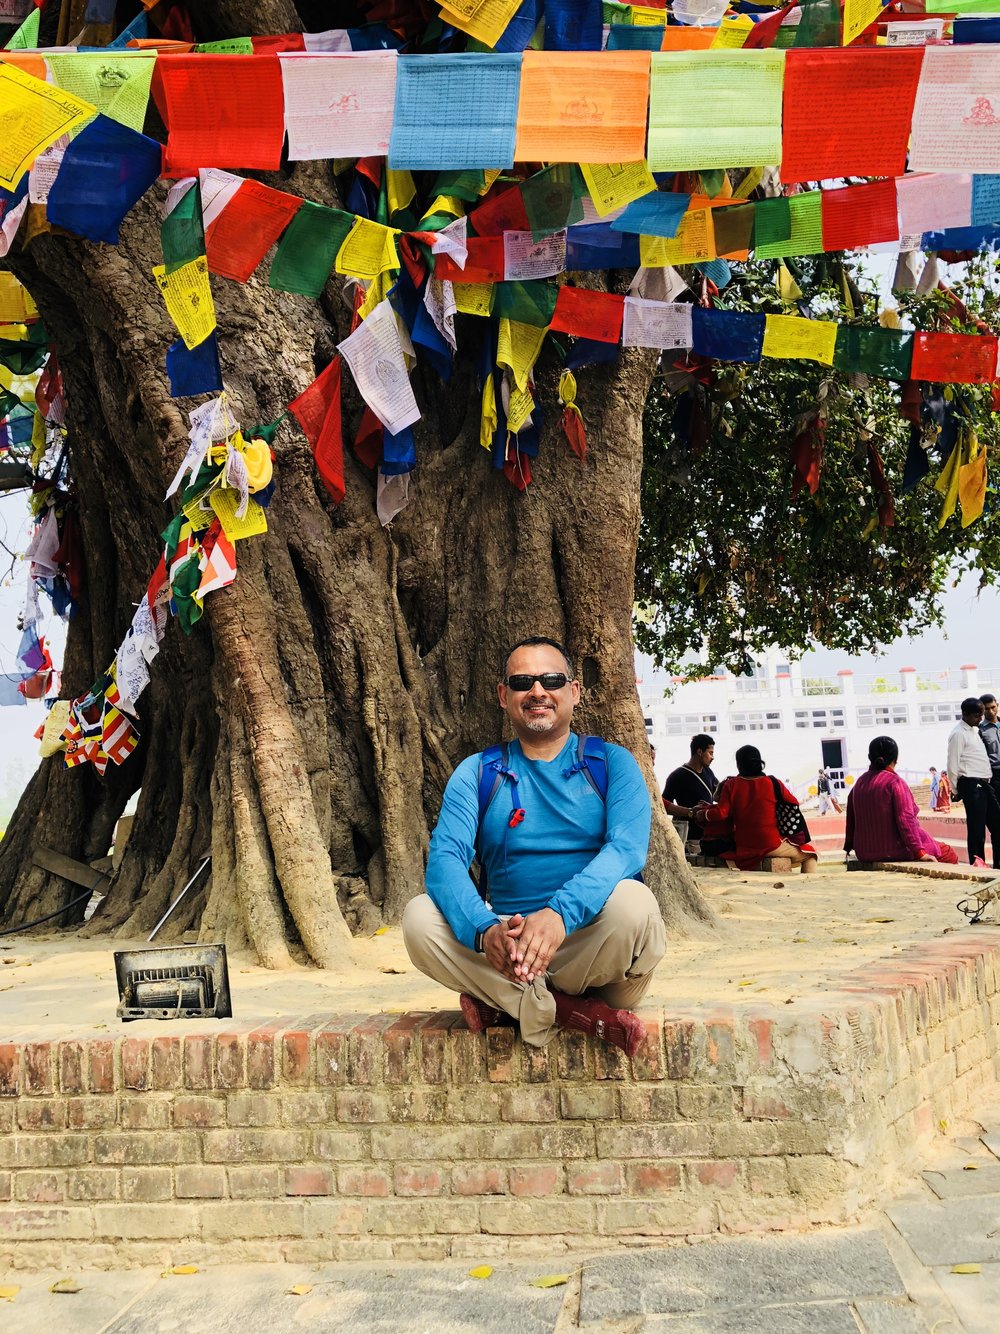 Exploring the birthplace of Buddha: Lumbini, Nepal (2018)